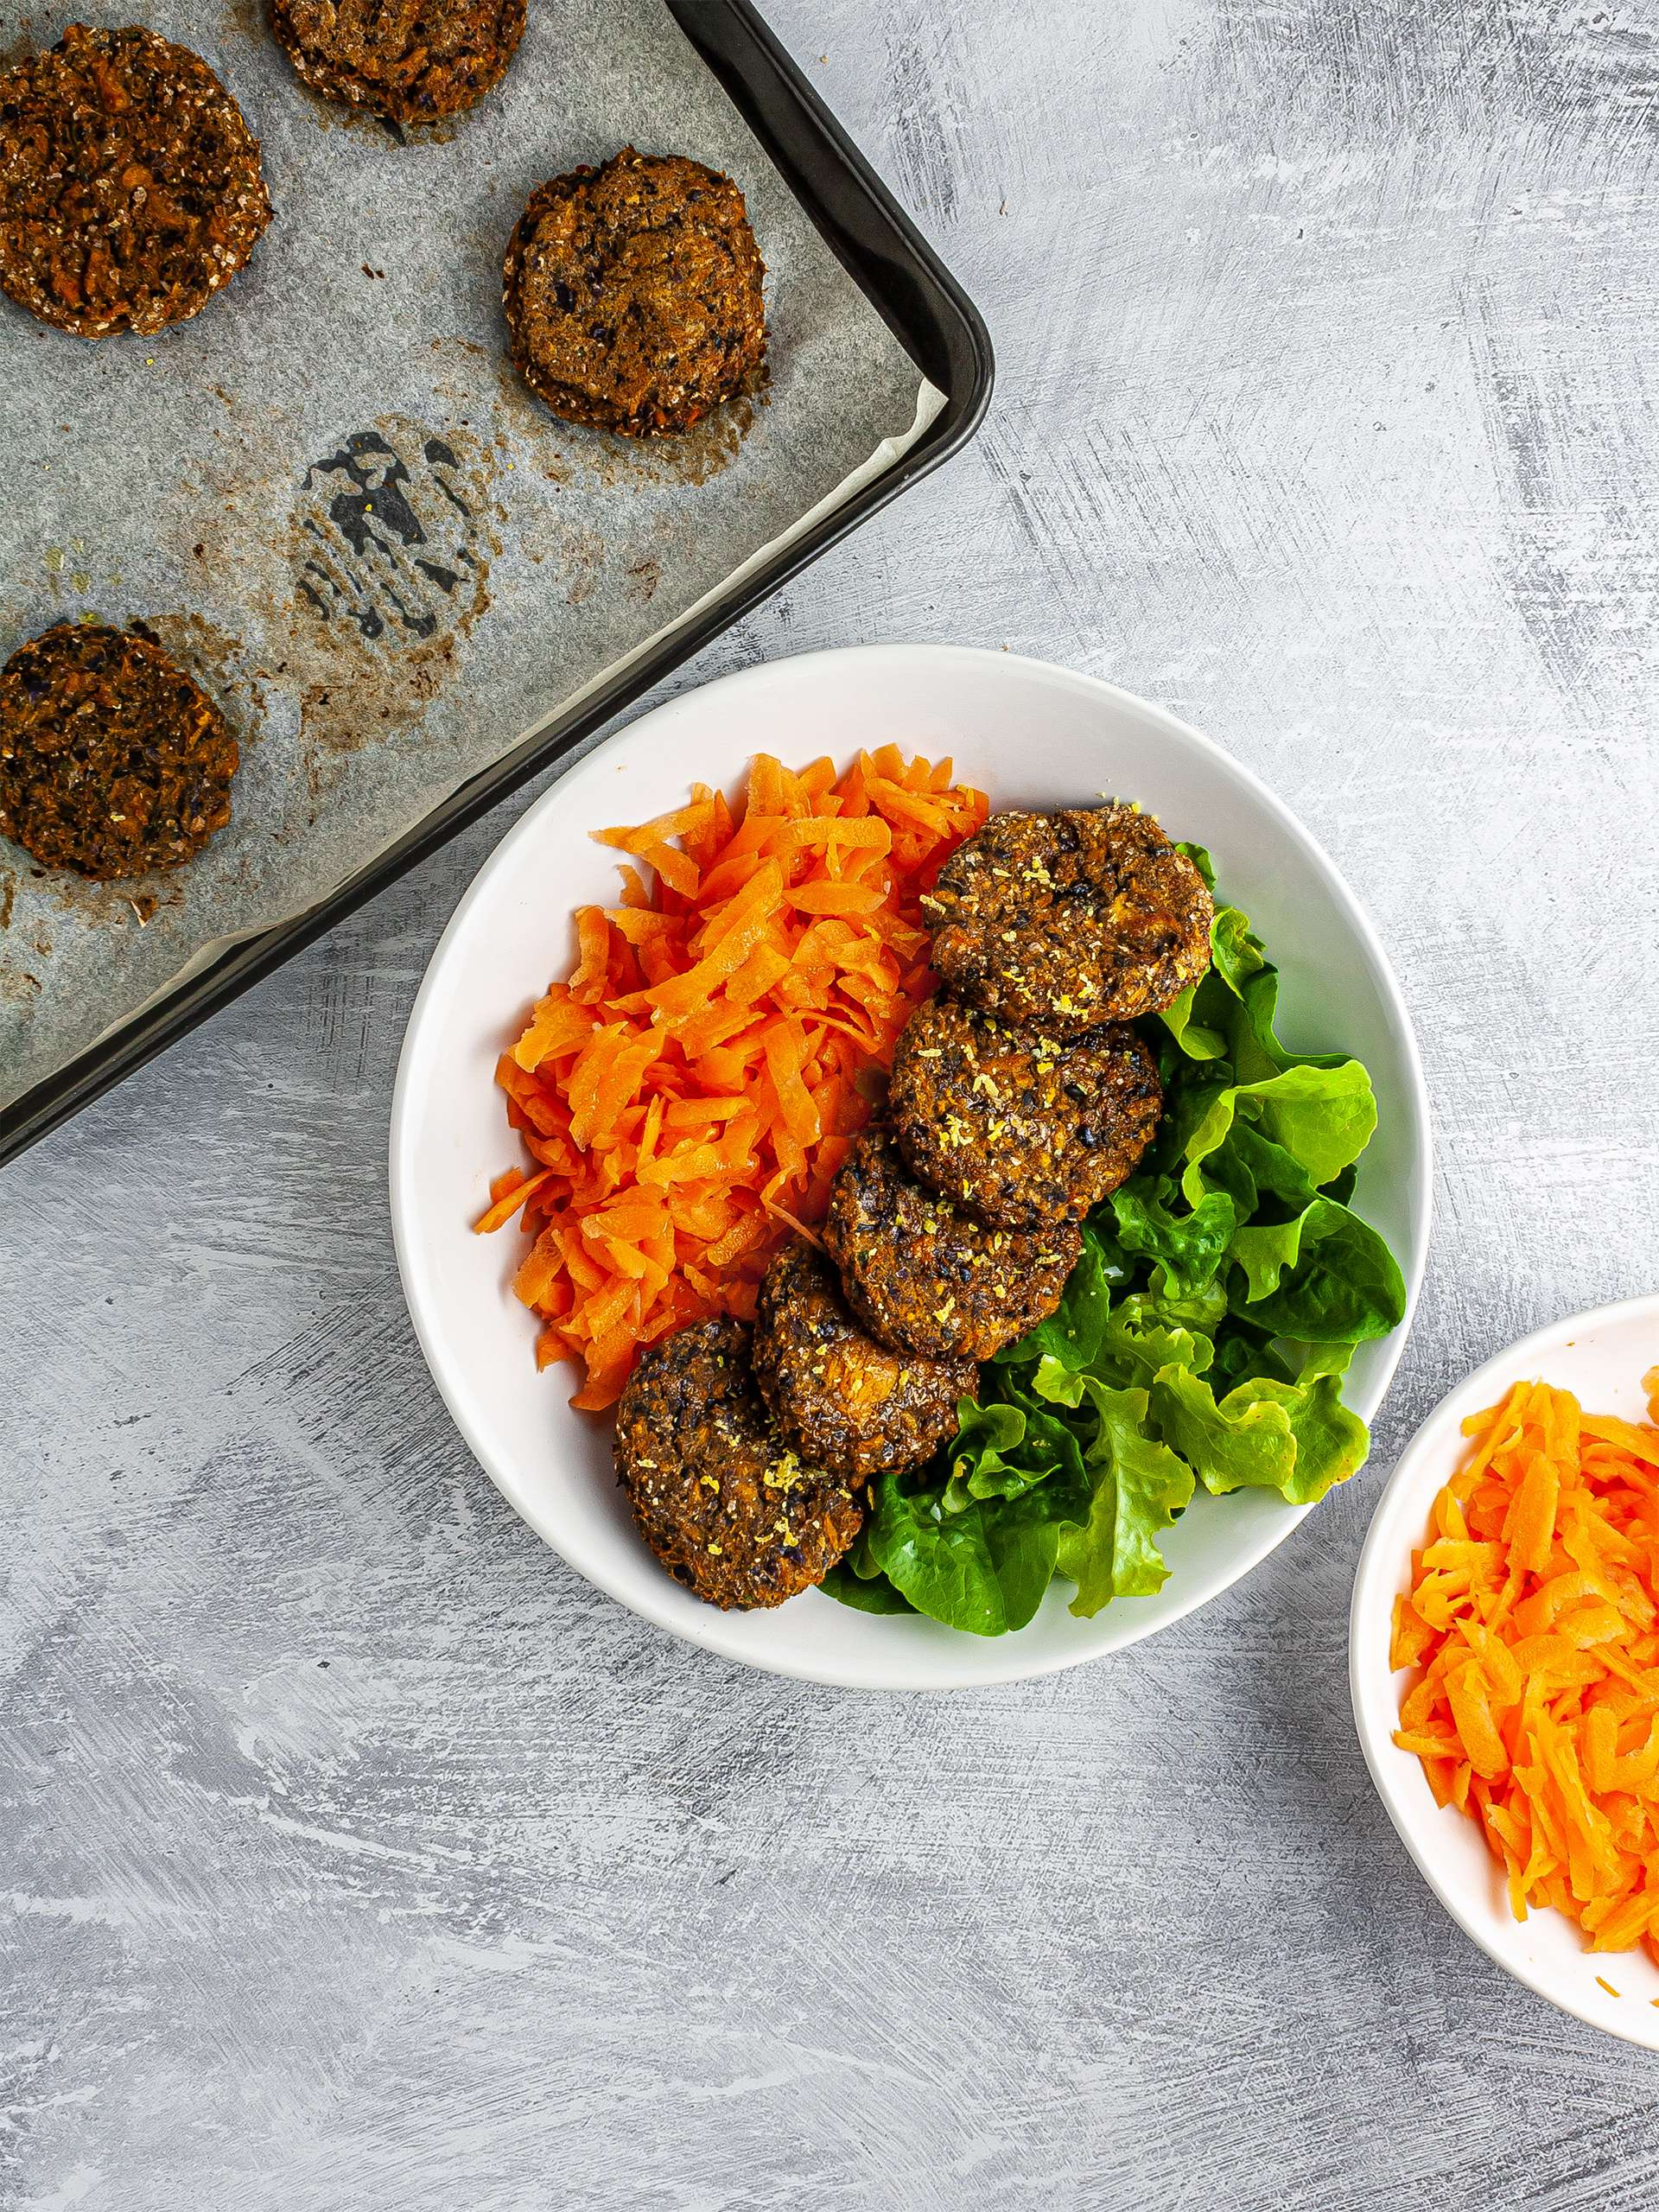 Baked falafels served with carrots and lettuce